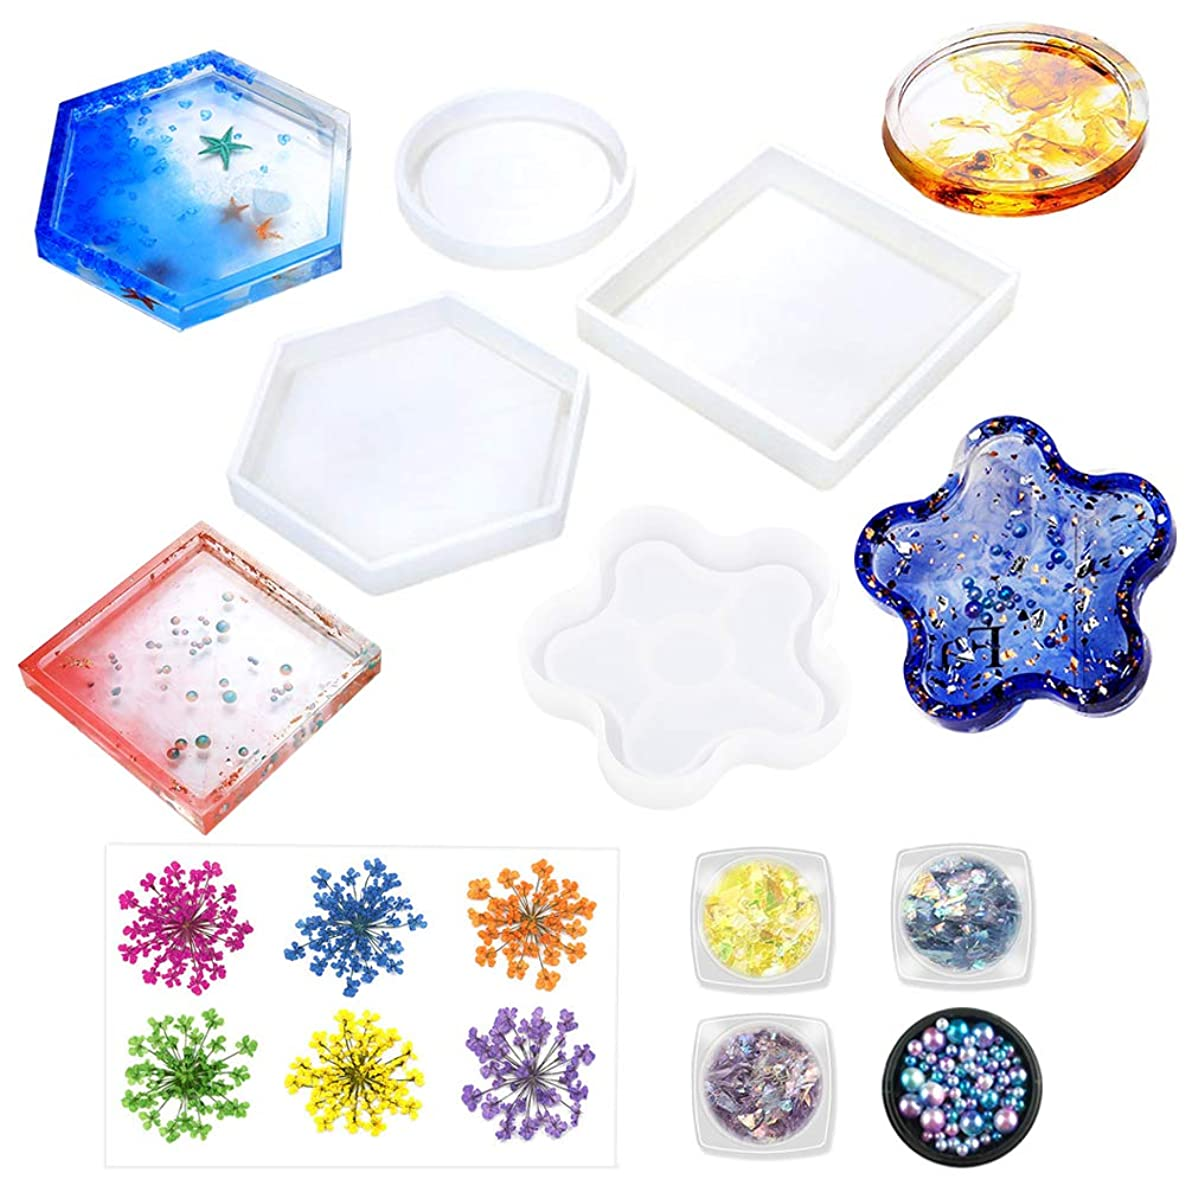 Jatidne Resin Molds Coaster Silicone Molds for Resin Epoxy Casting Molds 4 Pieces Shapes with Flowers and Beads DIY Craft Making